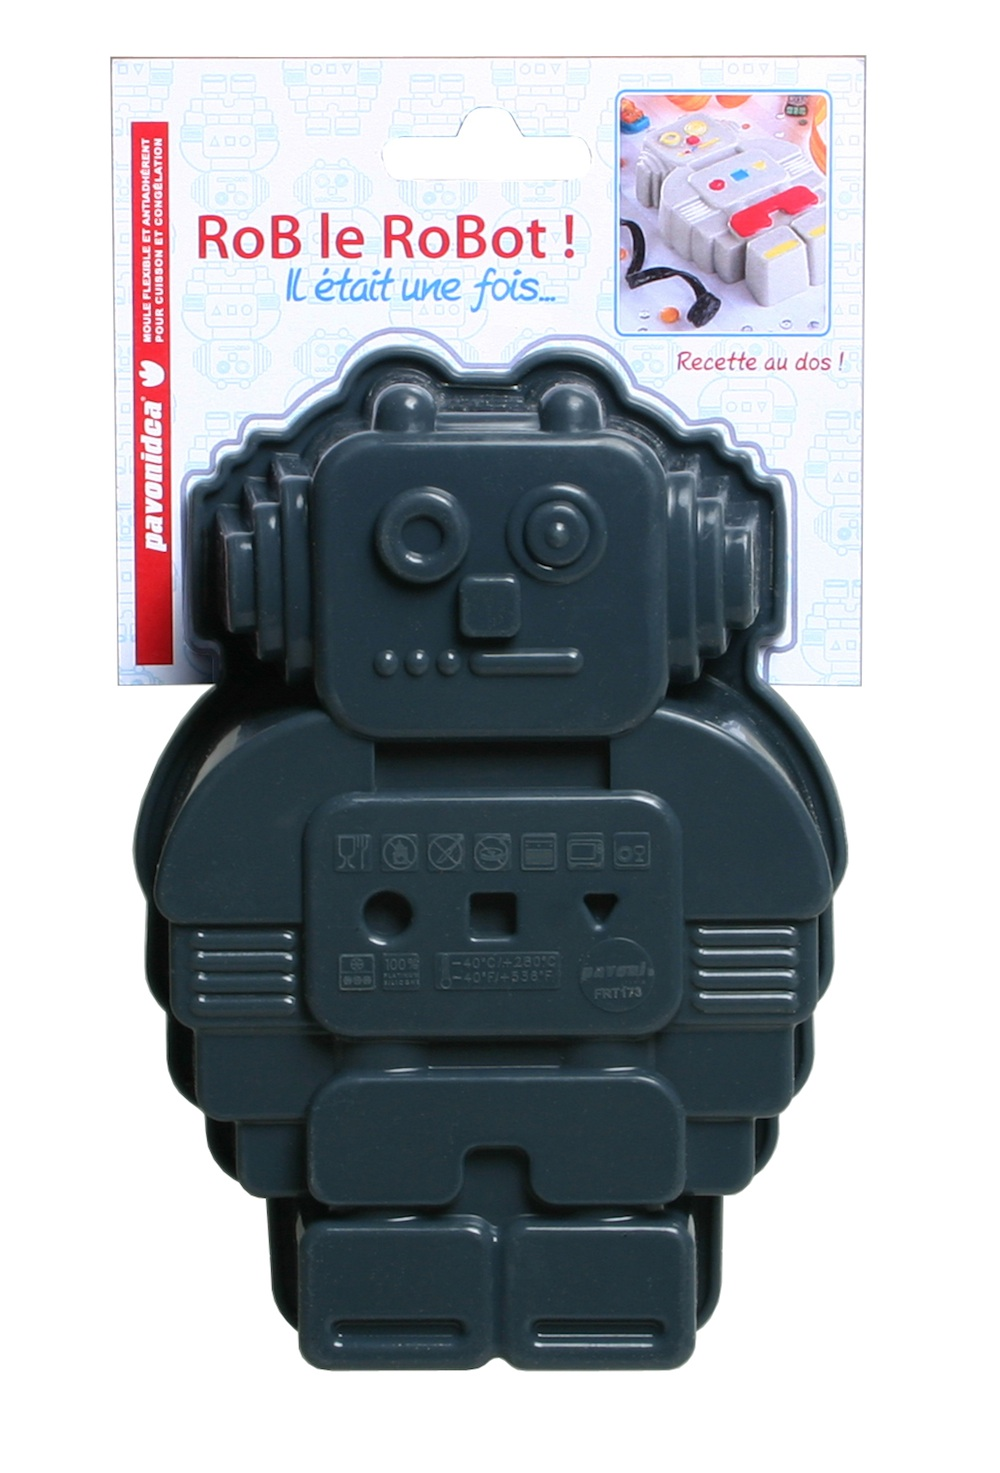 Mle pavo robot rob pack copie